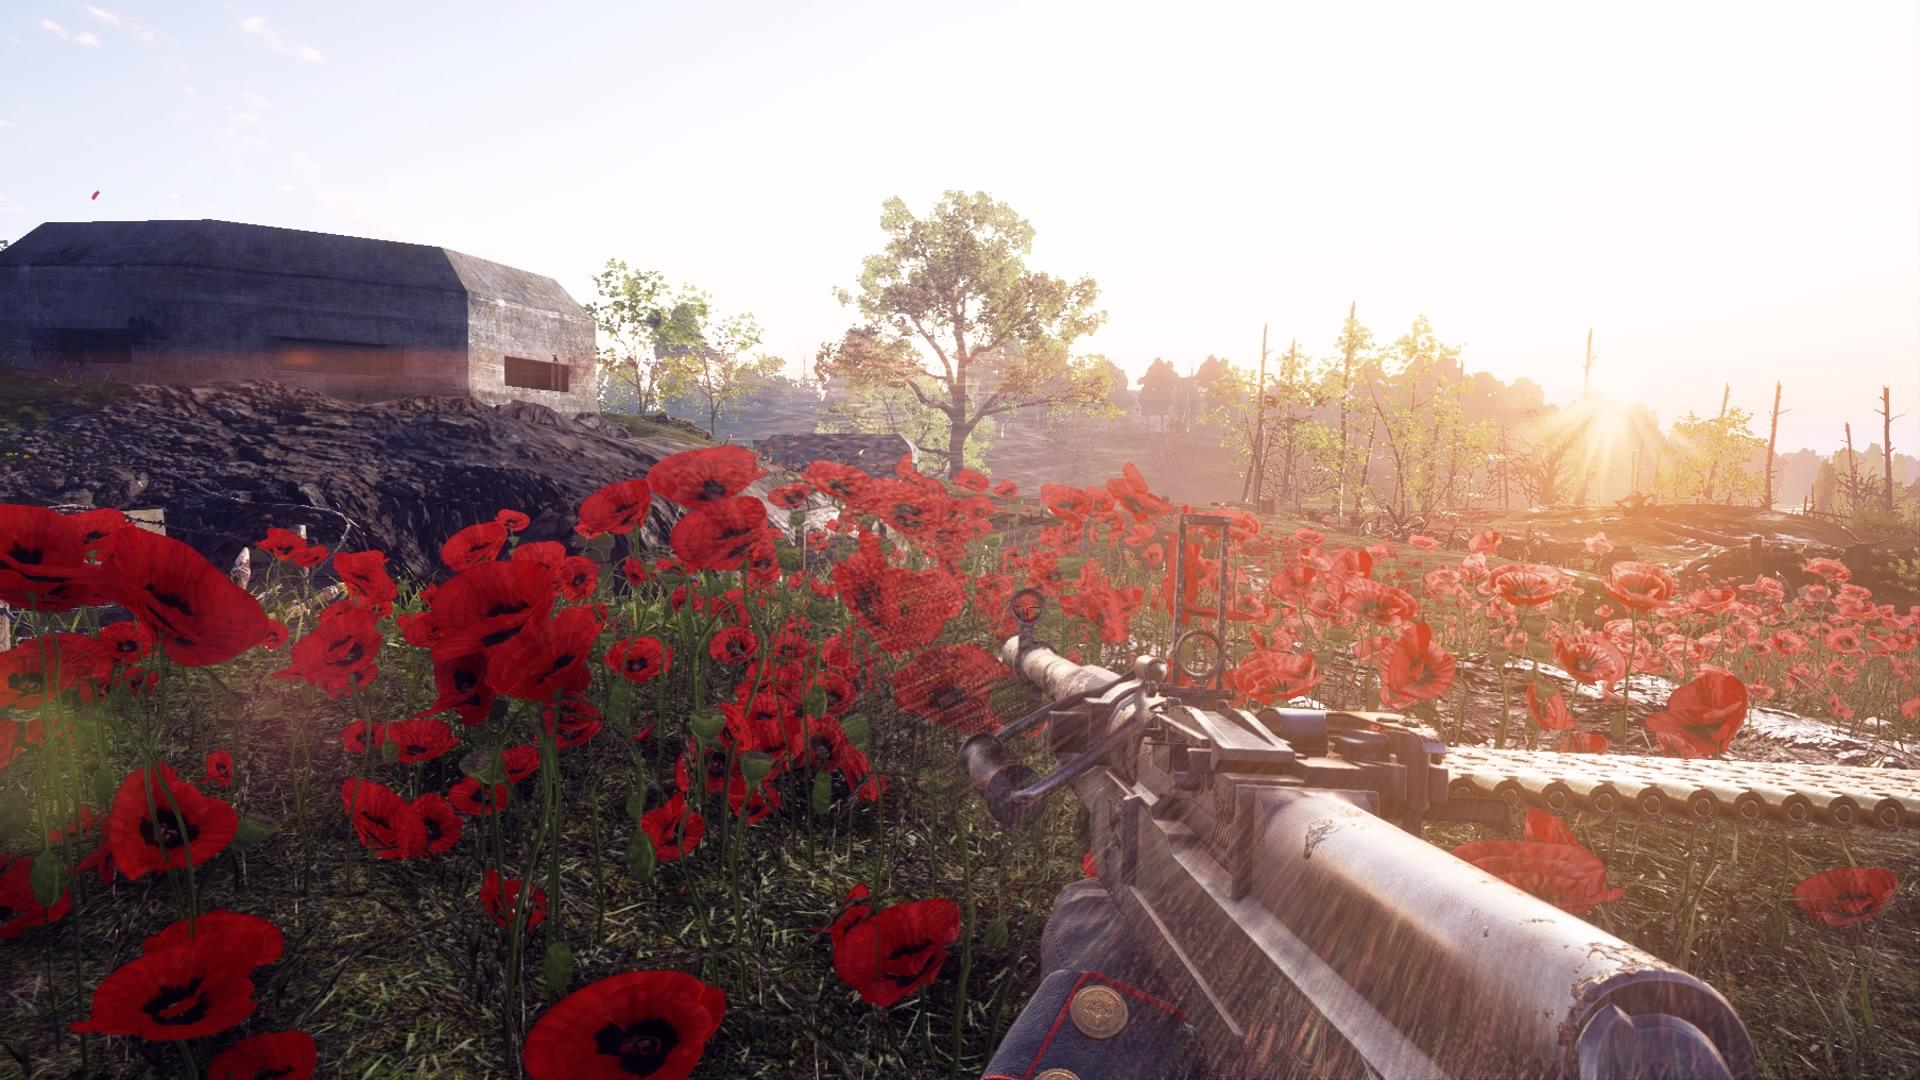 Battlefield 1 players hold a cease fire on Armistice Day to commemorate the end of WW1